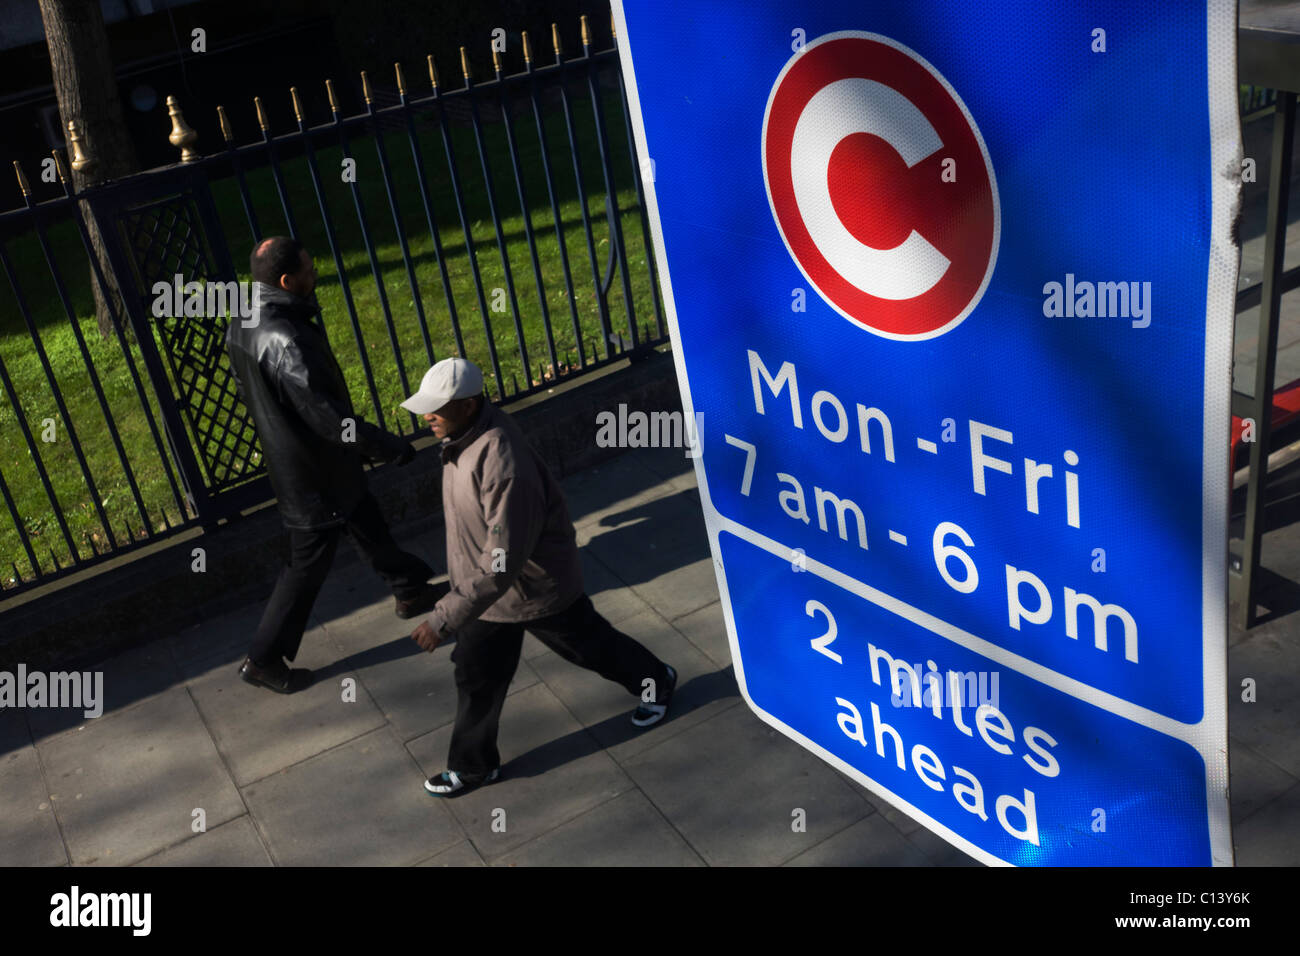 Two pedestrians walk beneath a motorists' Congestion Zone sign on a London street. - Stock Image